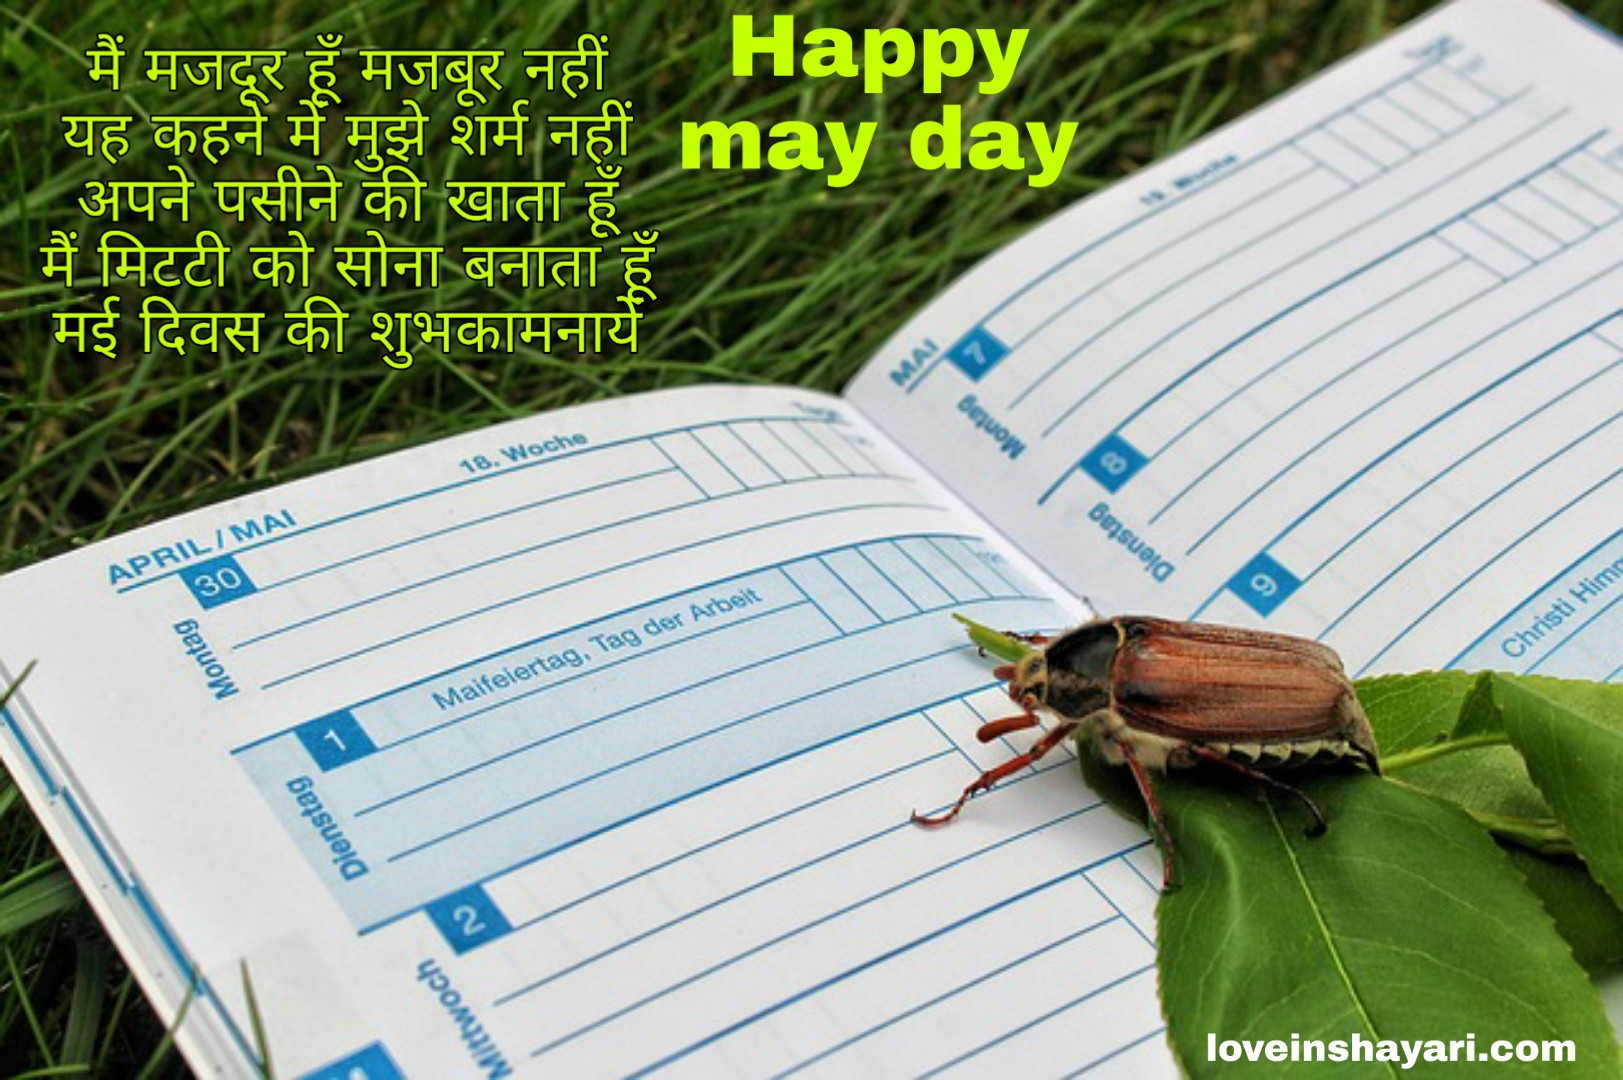 May day wishes shayari quotes messages